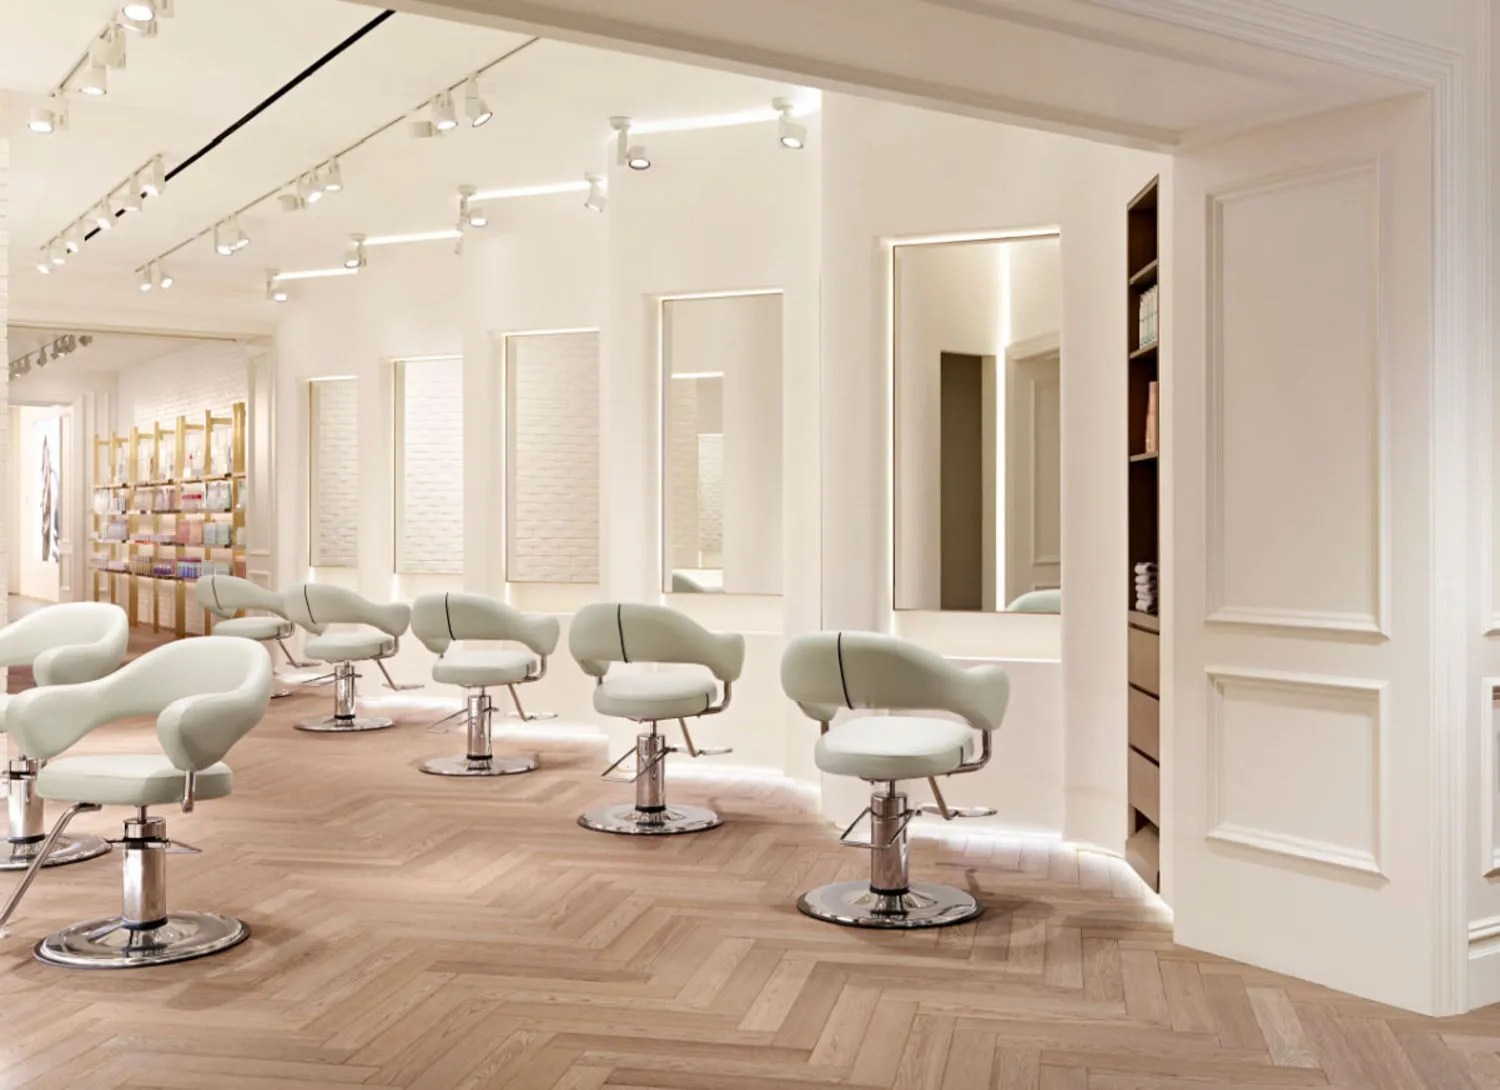 The Nexxus Salon Opens With a Special Lighting Concept in